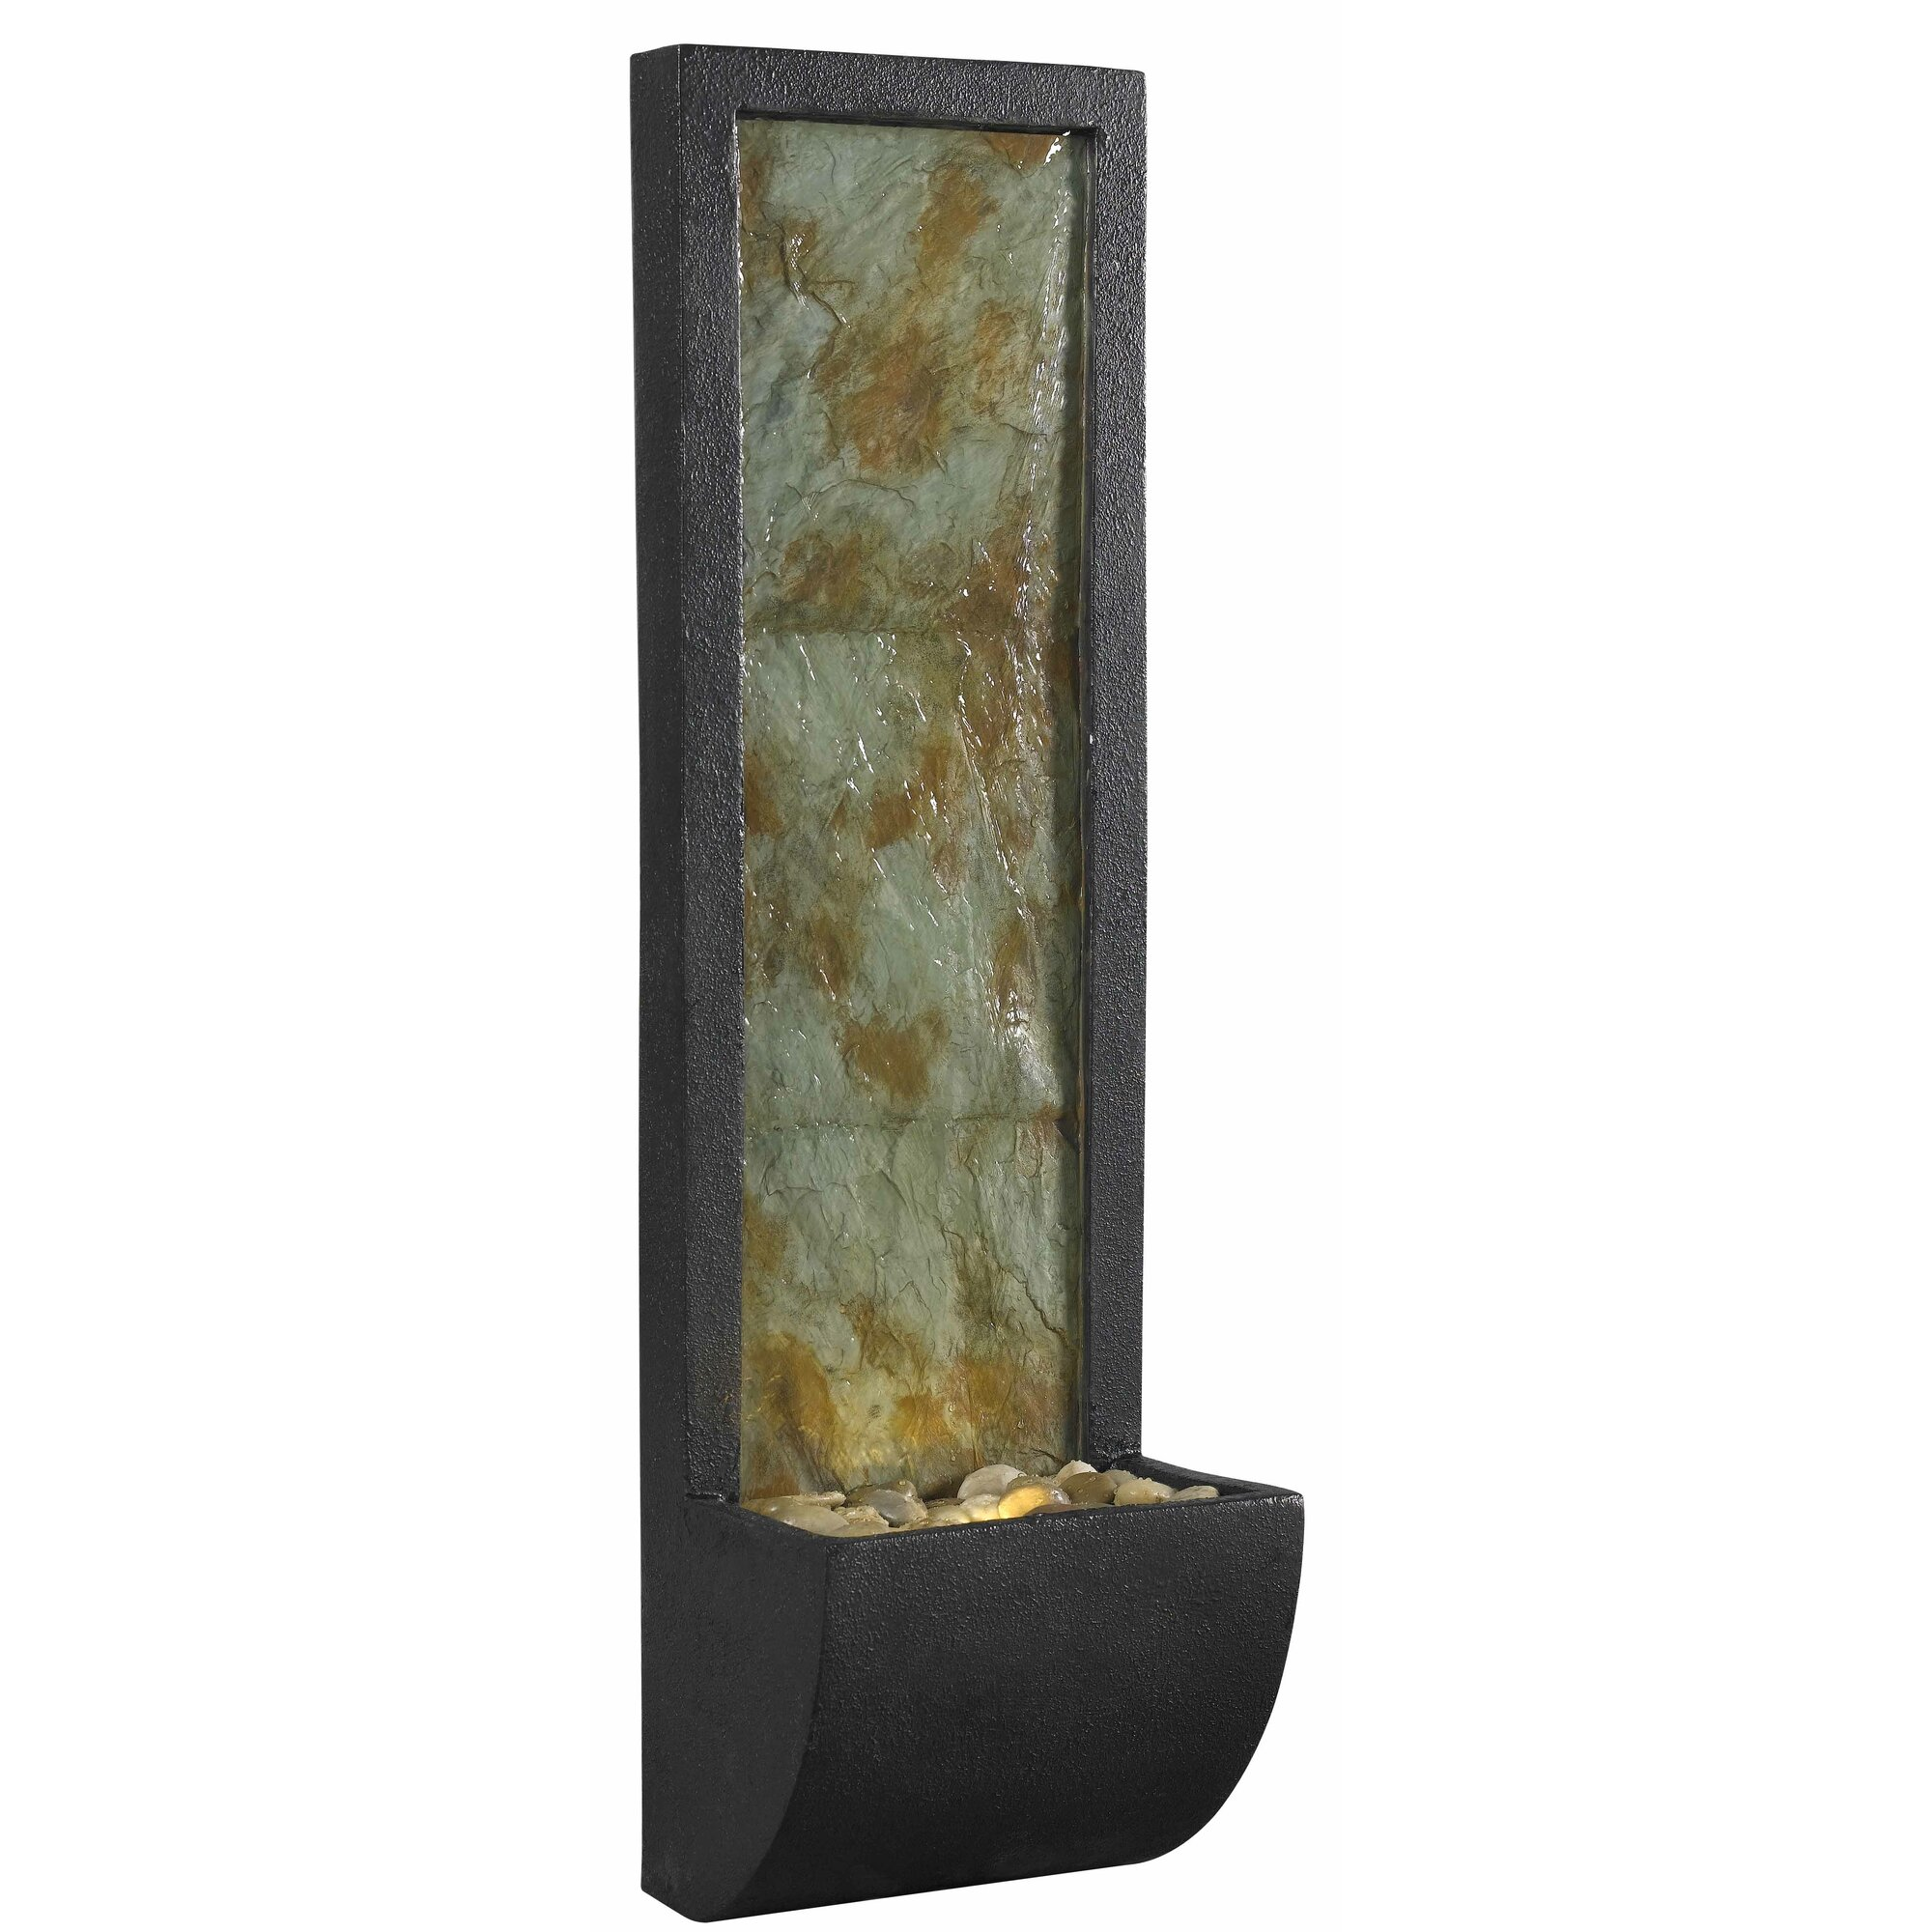 natural stone wall indoor wall fountain with light - Slate Wall Fountains Indoor